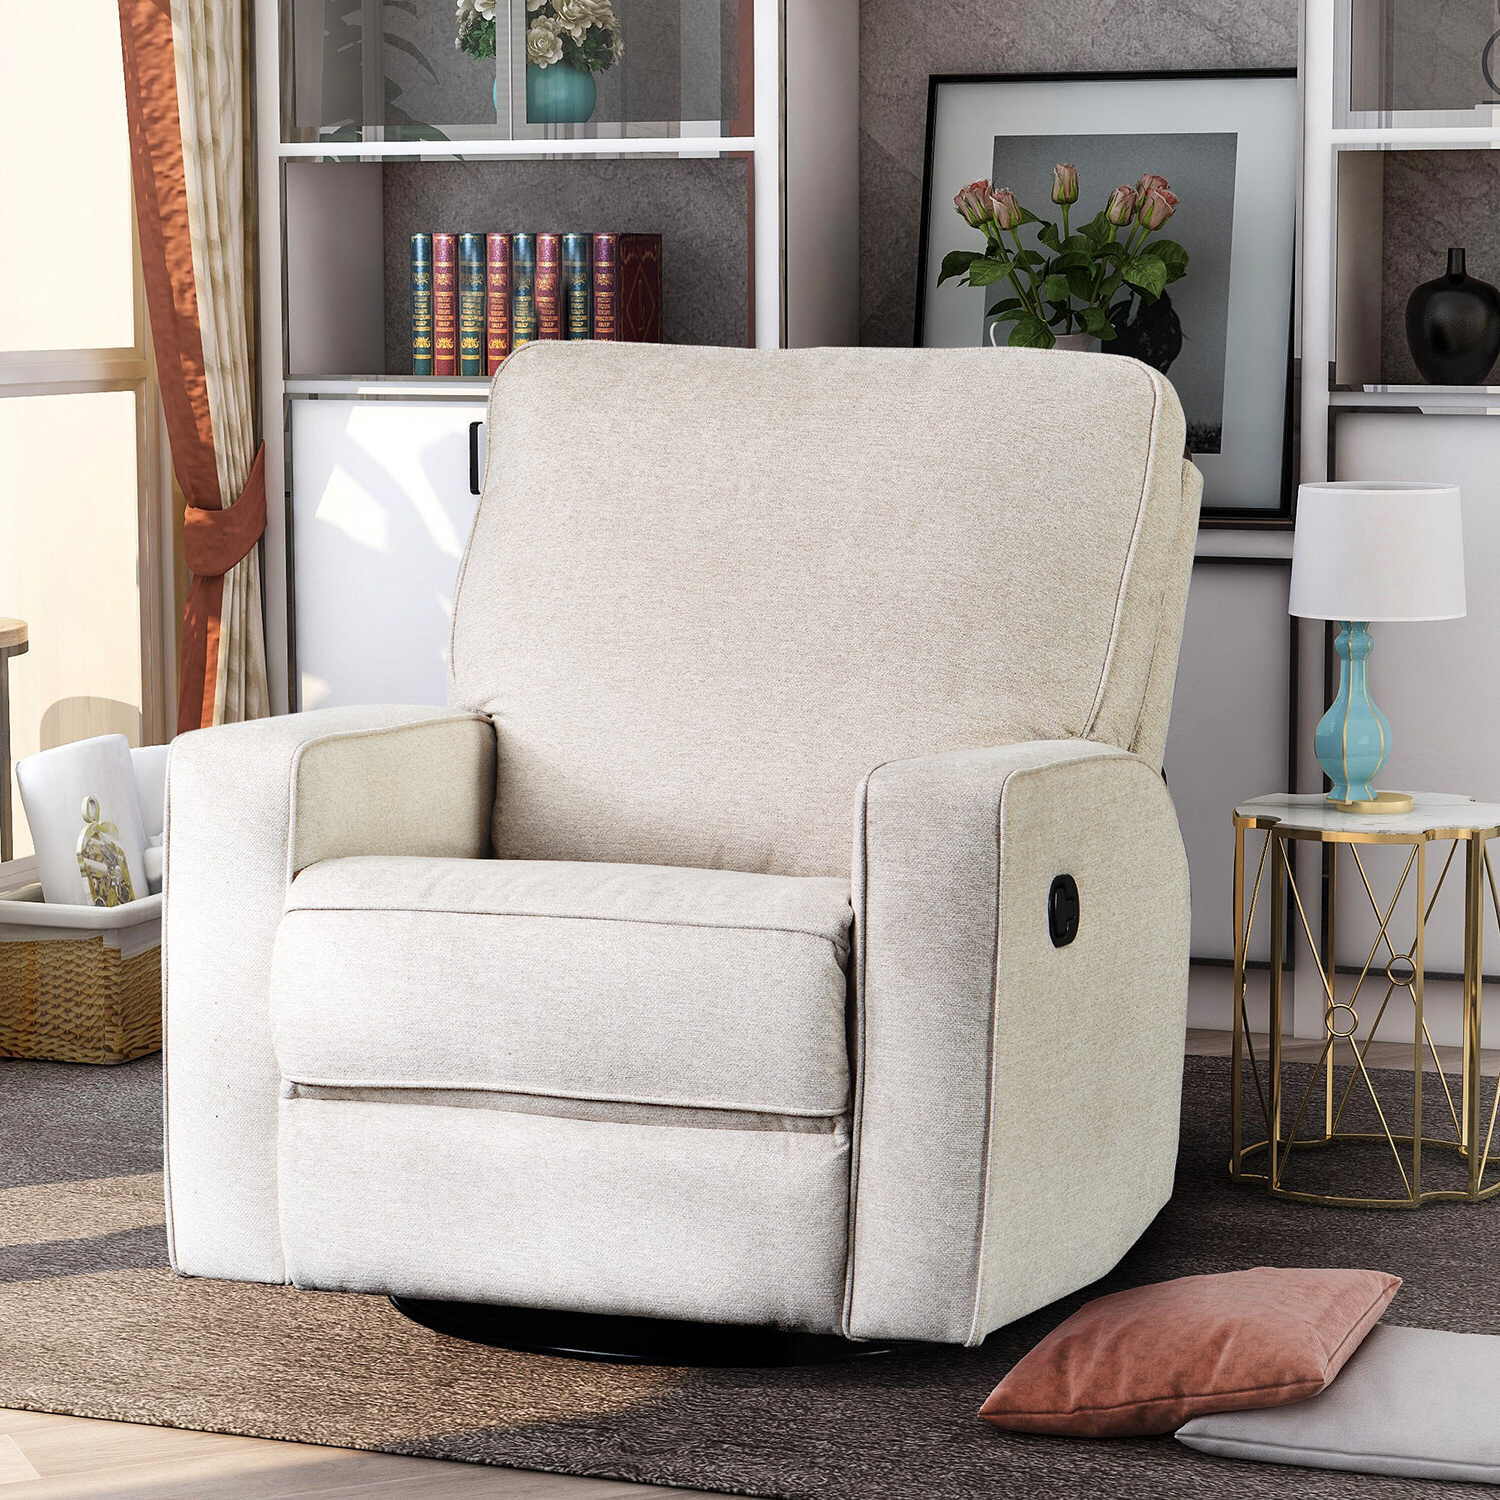 Autenberg Armchairs With Regard To Well Known Autenberg Manual Recliner (View 6 of 20)